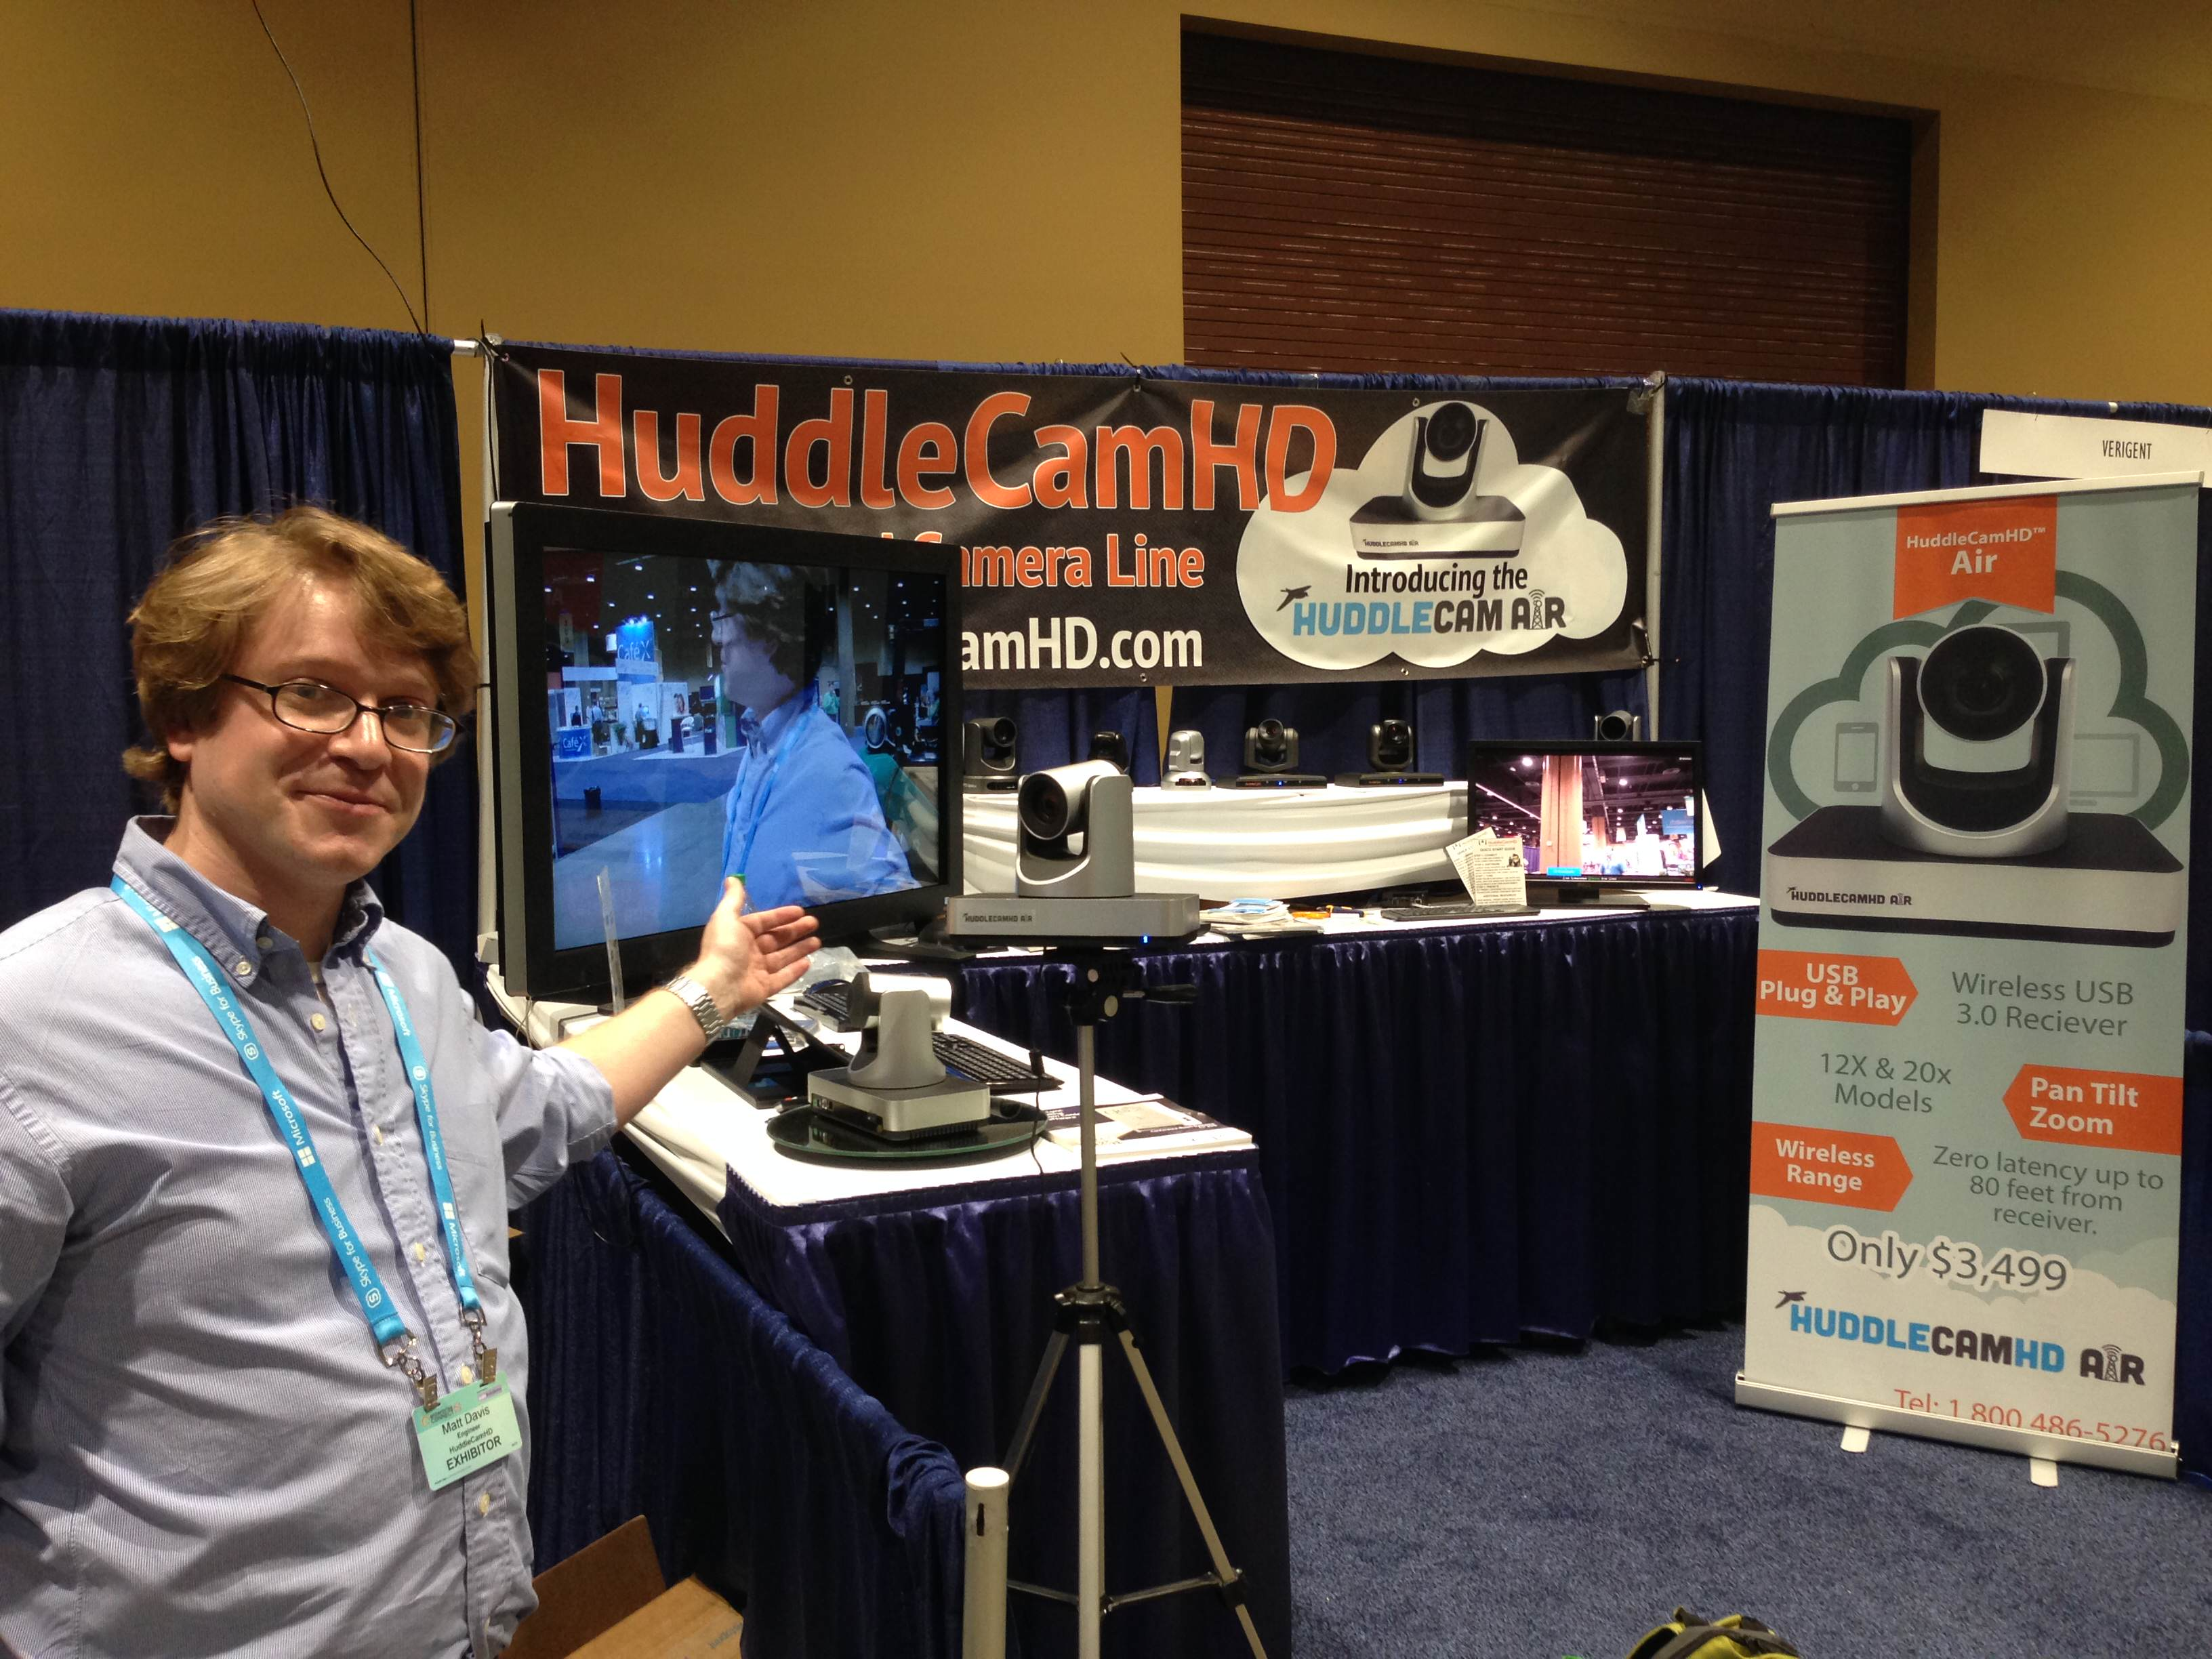 HuddleCam Air Wireless USB